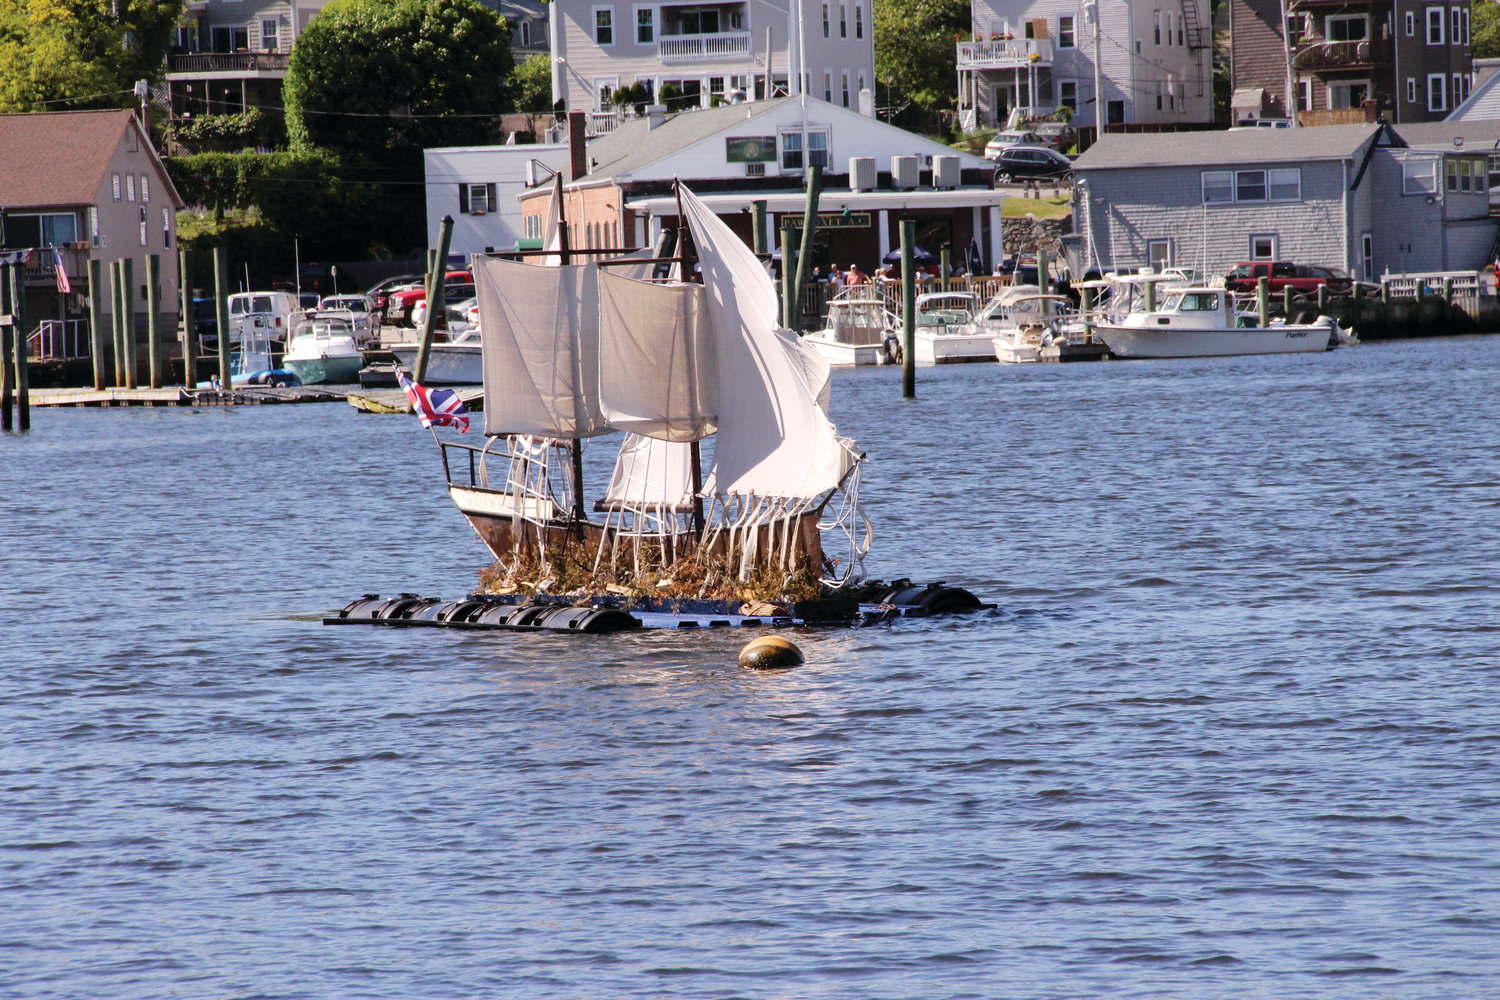 RISING FROM THE ASHES: The next phase of repairs to the Gaspee silhouette will be funded by the profits of the Fall-Out event.